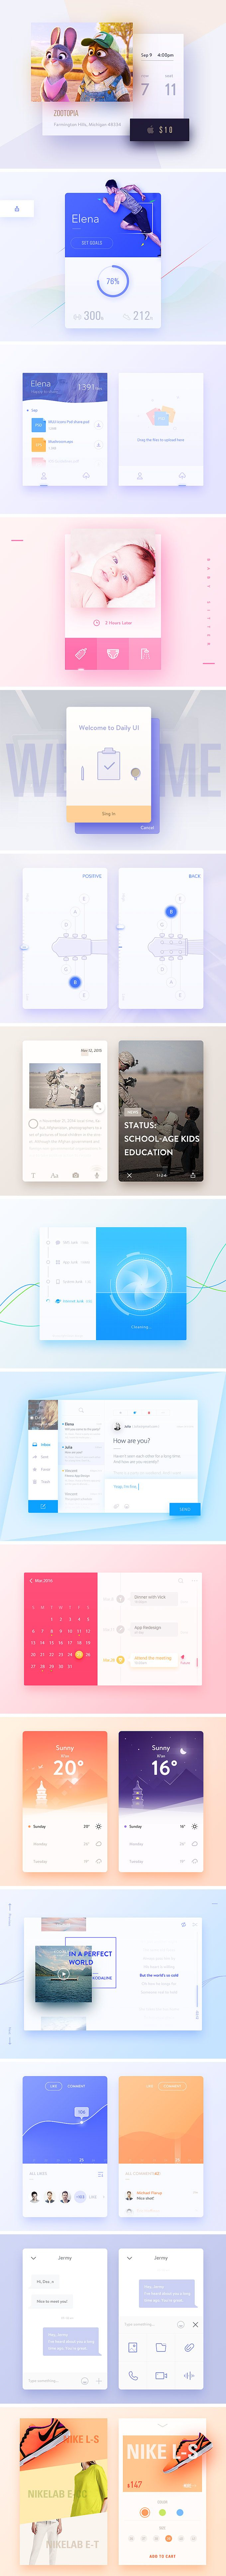 Inspirational UI Elements - download freebie by PixelBuddha